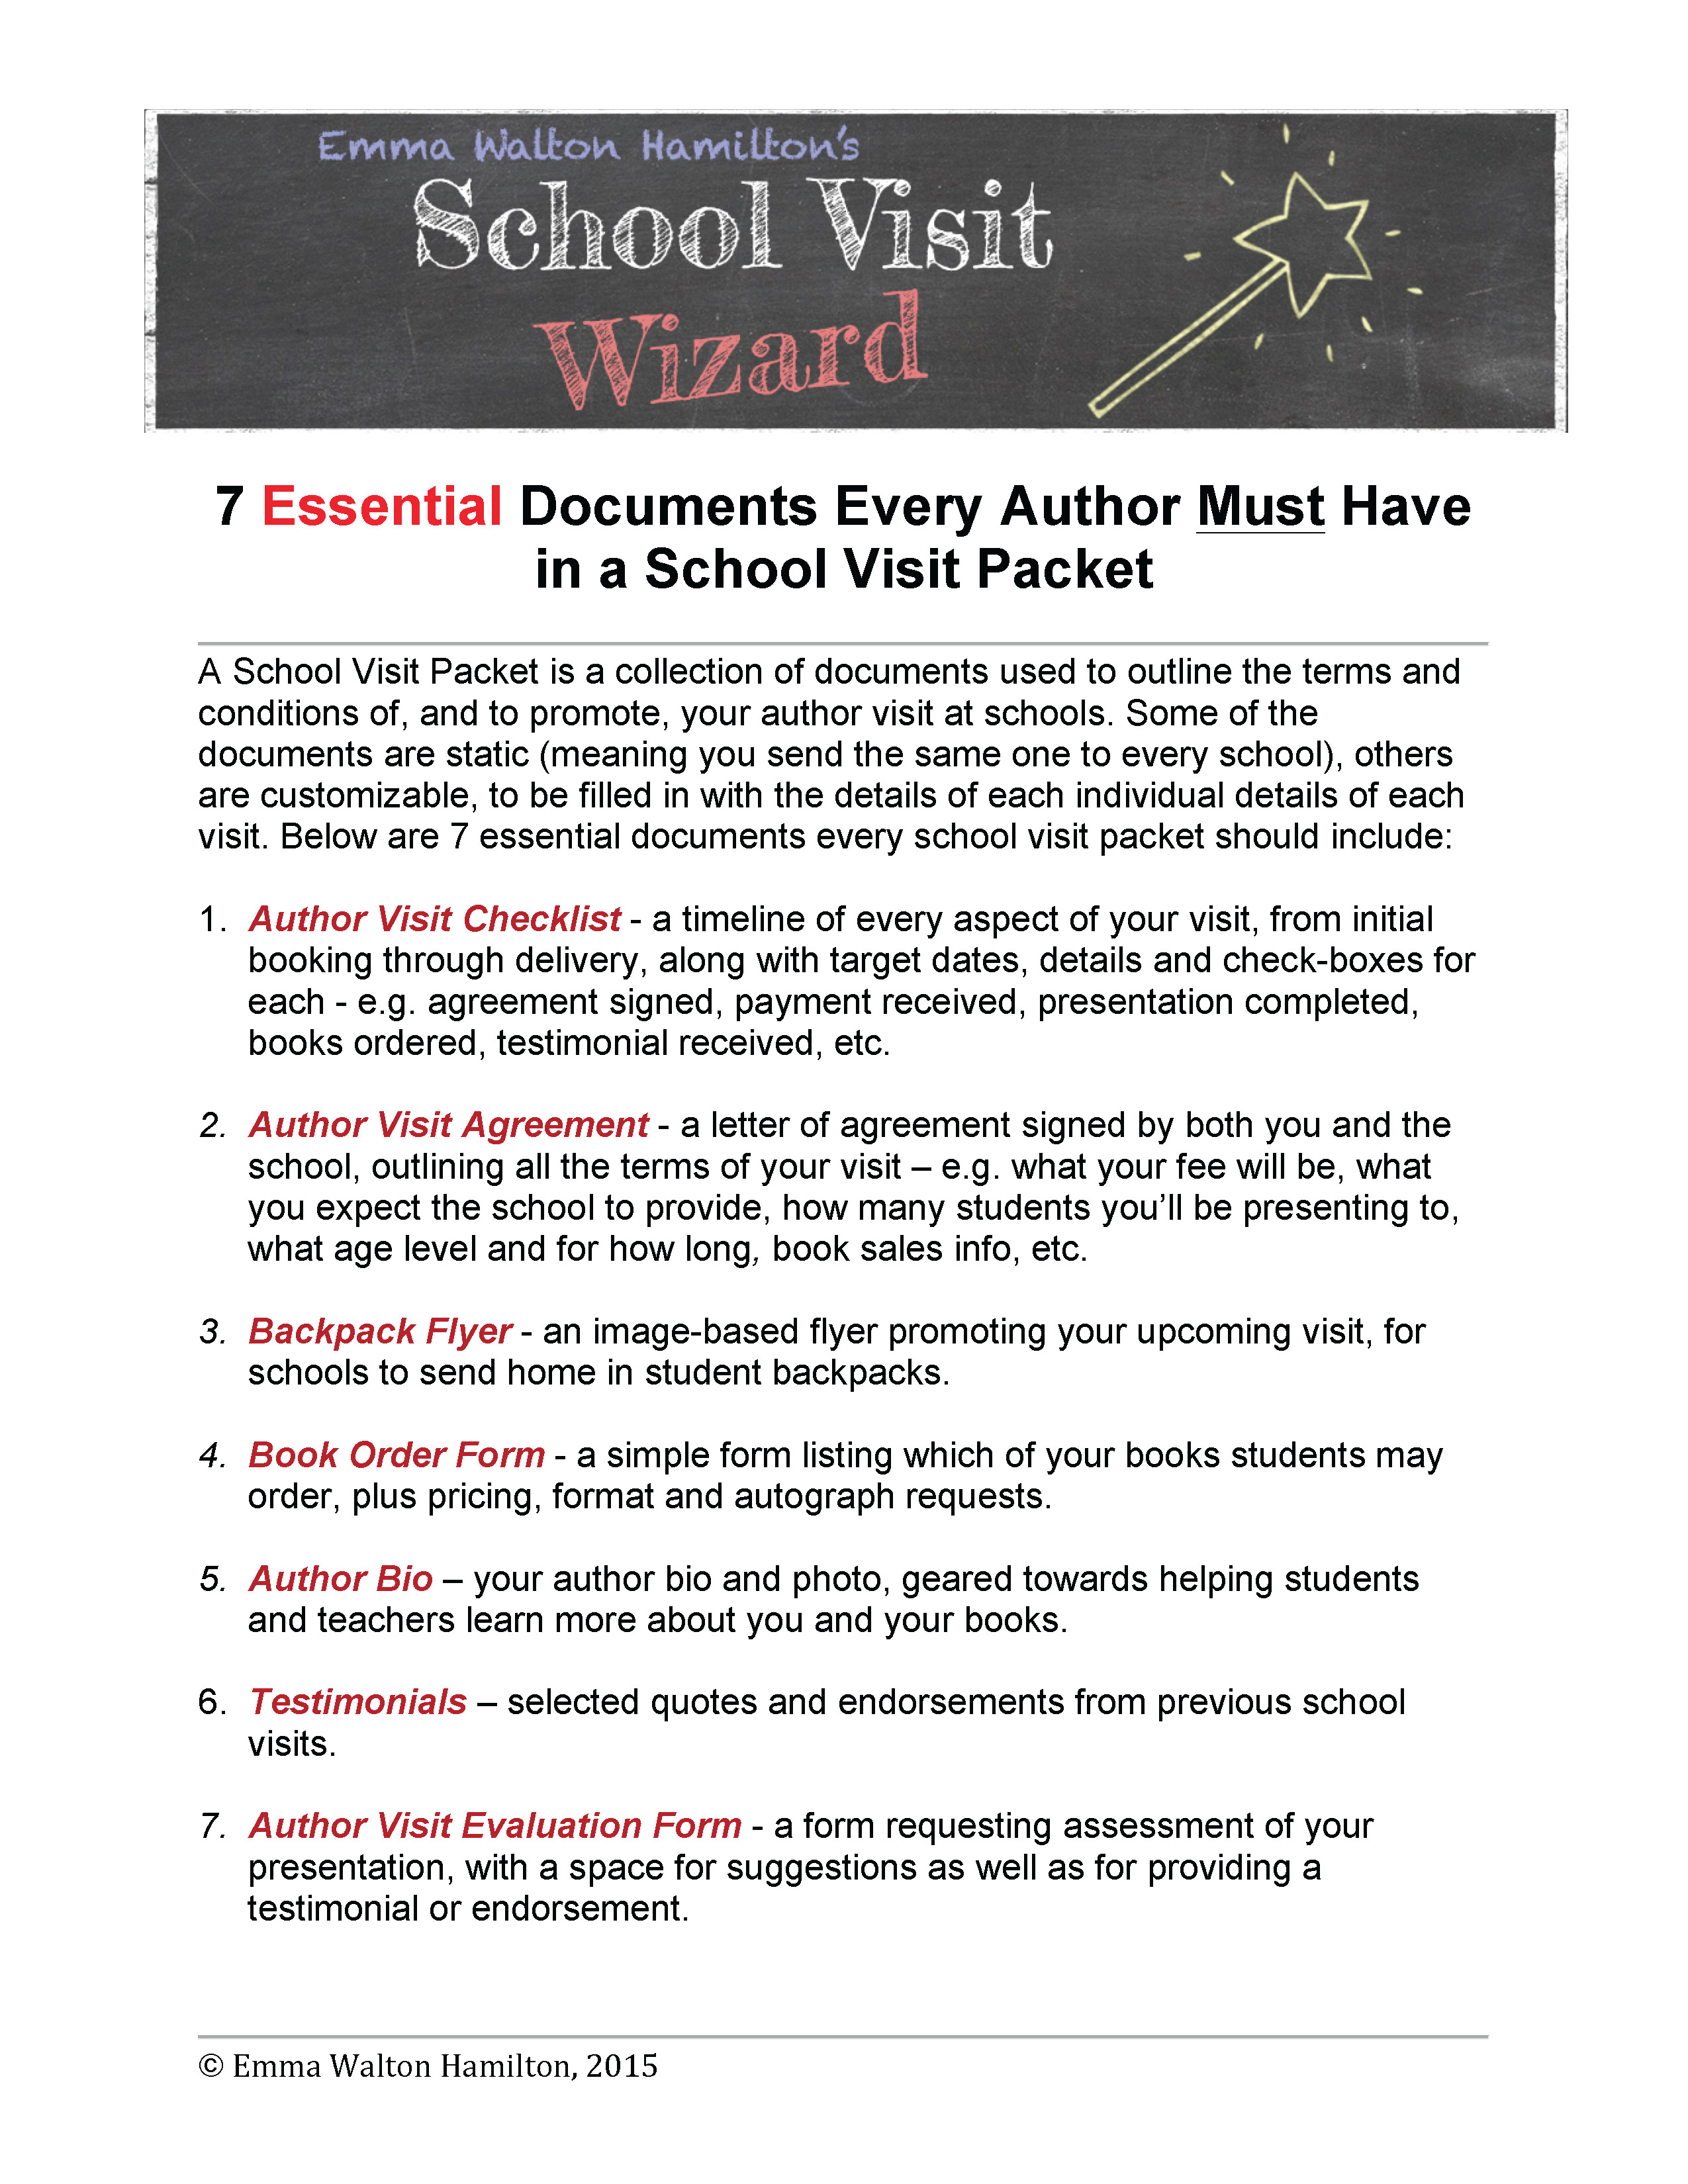 7 Essential Documents Every Author Must Have in a School Visit Packet